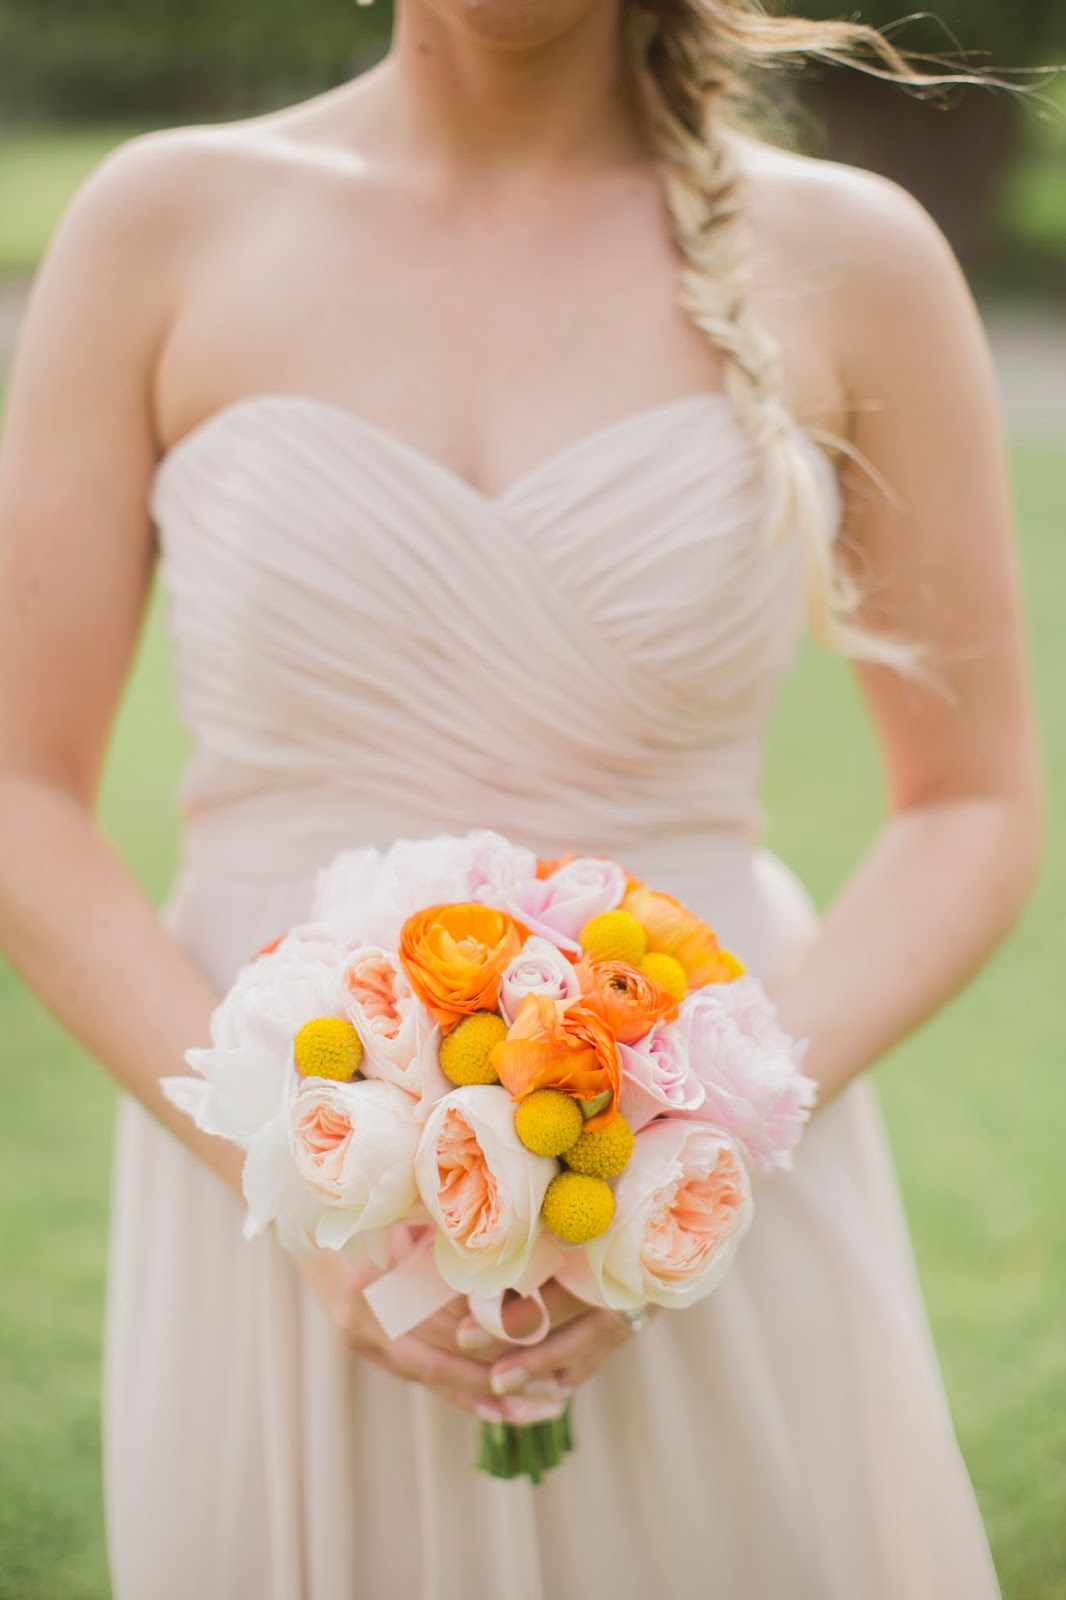 kj and co burlington golf and country club wedding photos oakville wedding planner, decor and more flowers